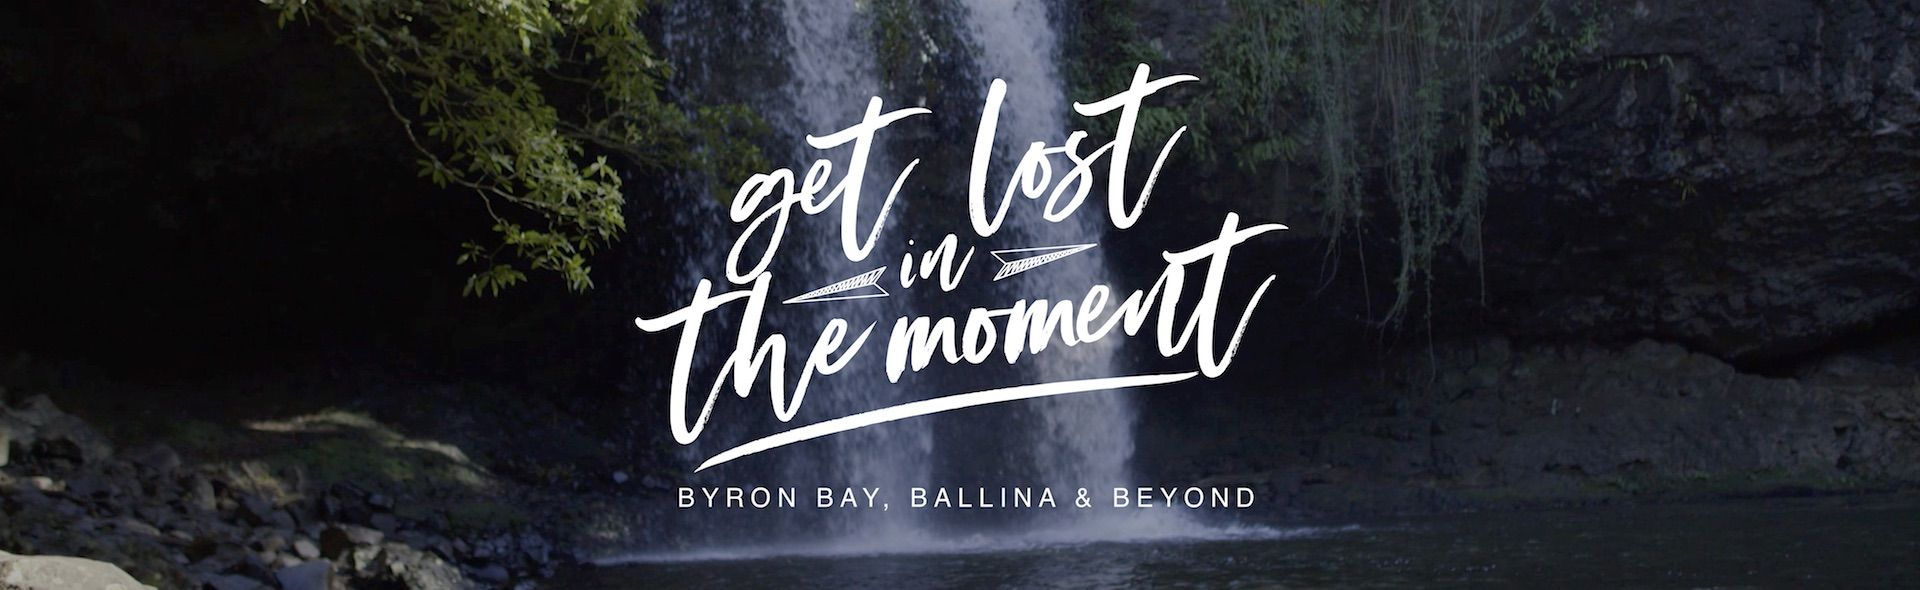 Get lost in the moment banner